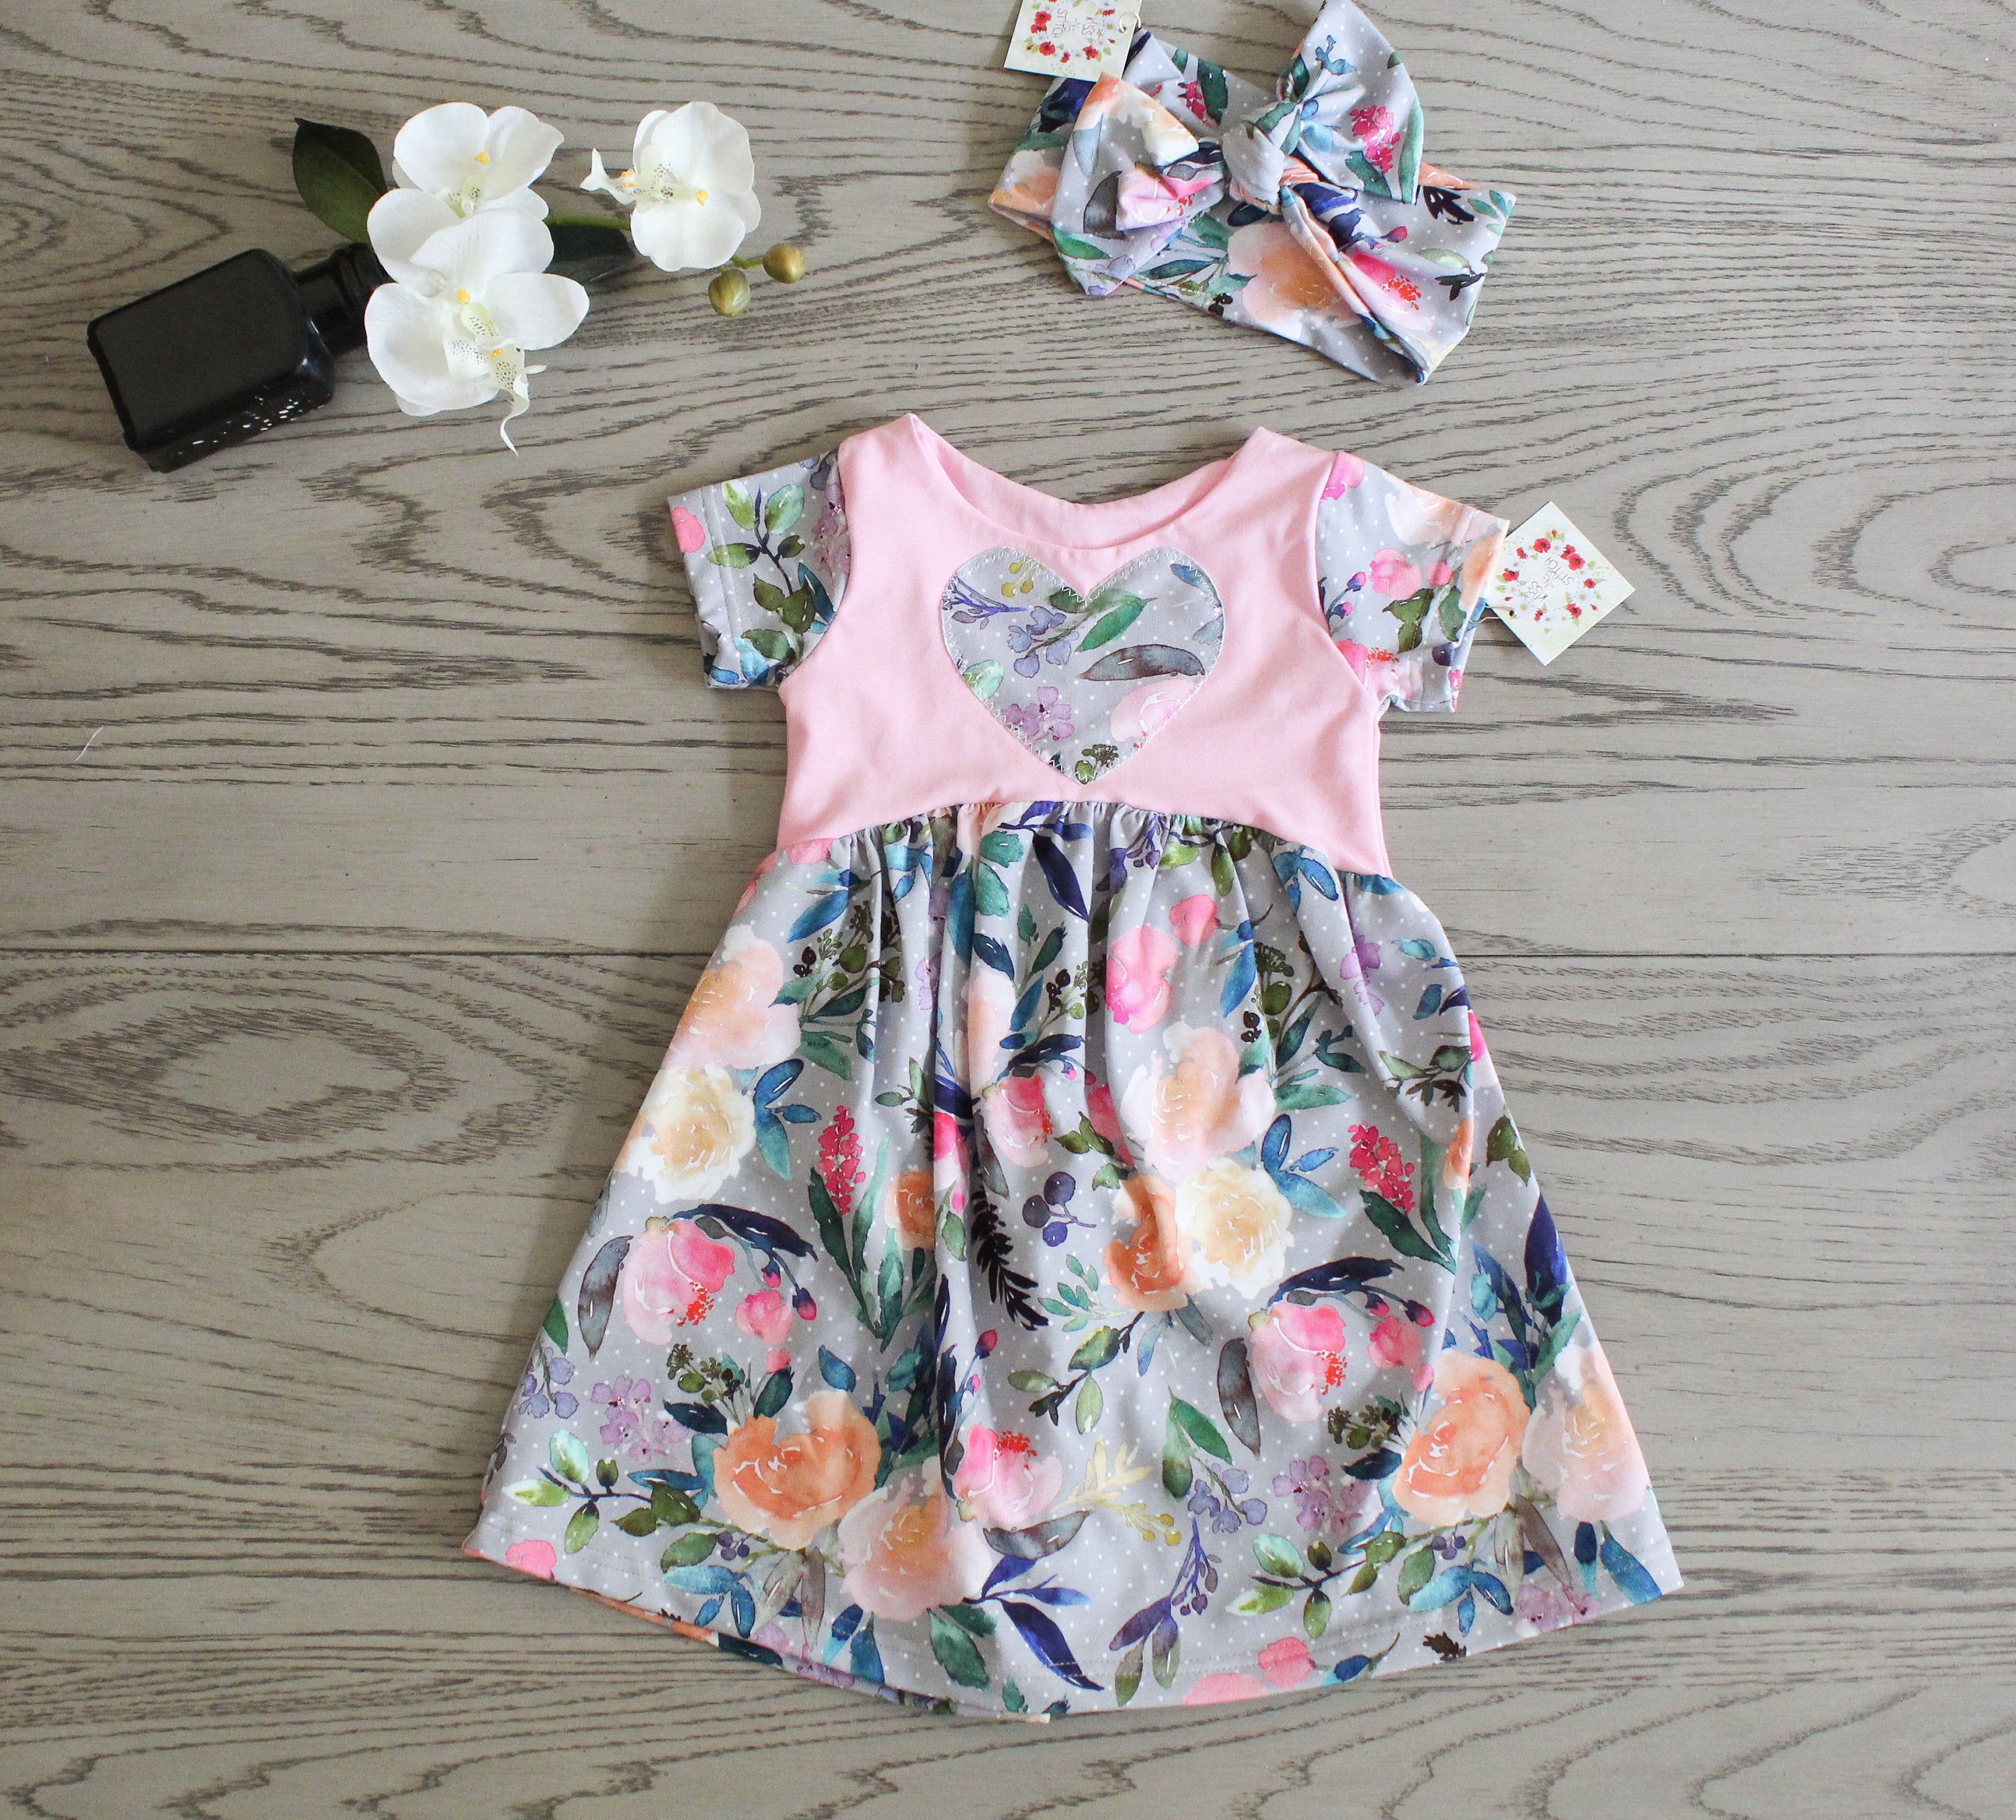 Girls 3t Dress Floral Toddler Dress Summer Dress And Large Bow 3t Birthday Outfit Boho Chic Stylis Toddler Dress Stylish Baby Clothes Trendy Baby Clothes [ 2709 x 3000 Pixel ]